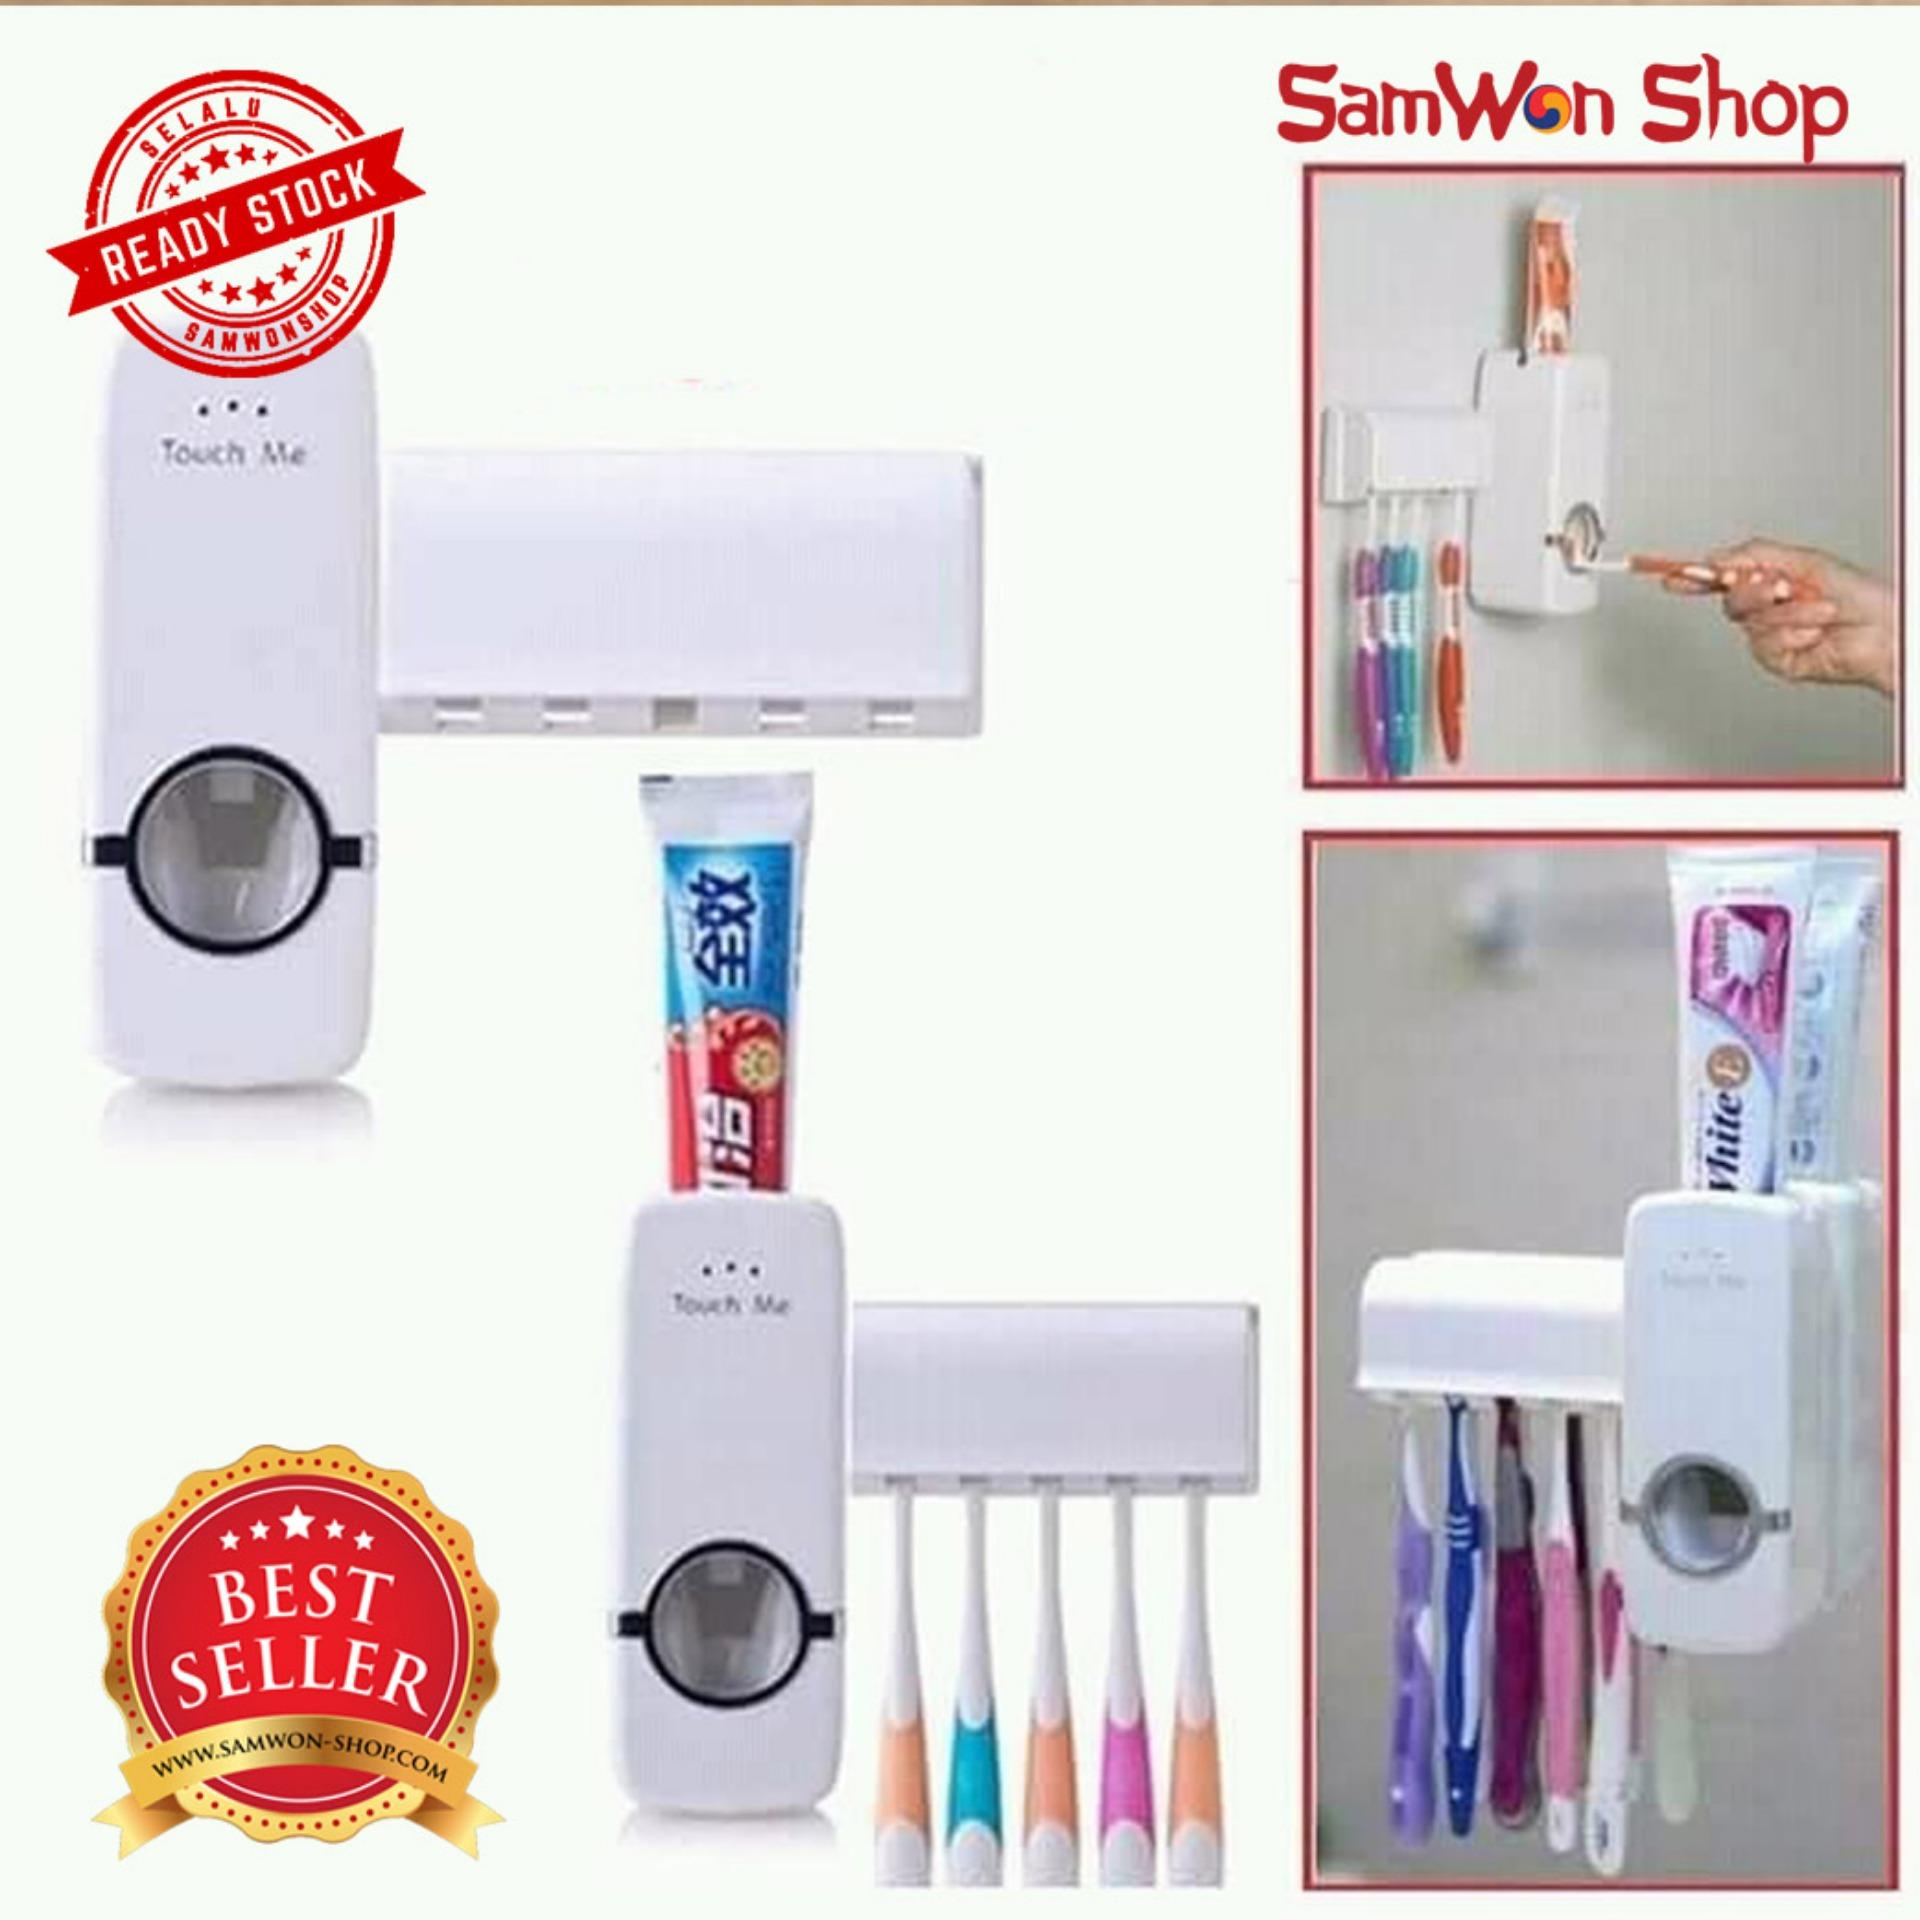 Neo Dispenser Odol Toothpaste Dispenser & Brush Set Dispenser Odol Pasta Gigi Dan Tempat Sikat Gigi